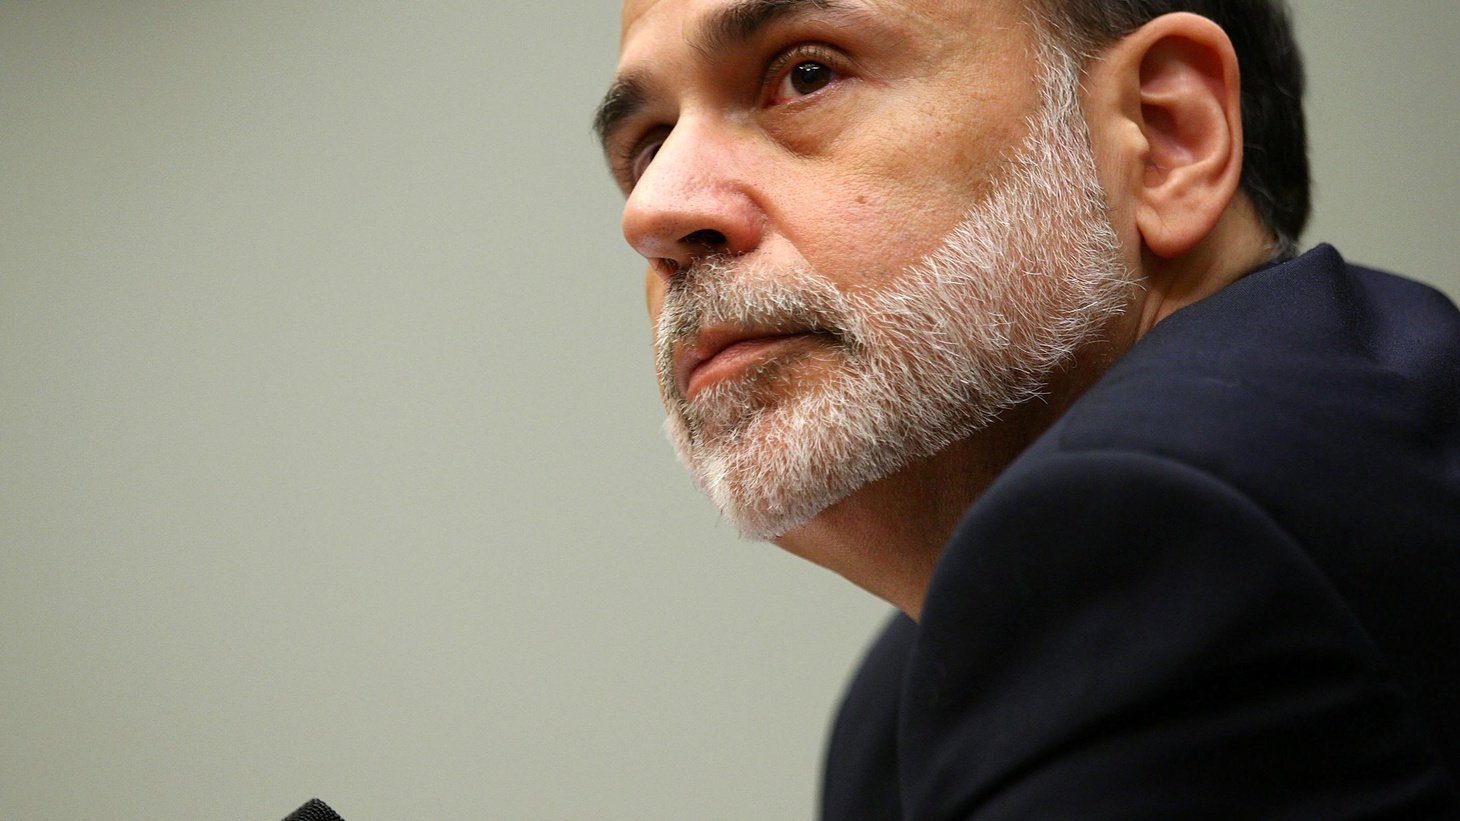 Fed Chief Ben Bernanke says he hasn't ruled out buying up more bad paper to prop up the economy. What do the primaries portend about the mid-term elections ahead? Finally, is it a big deal that former RNC chair Ken Mehlman has come out as gay and will fight for gay marriage?